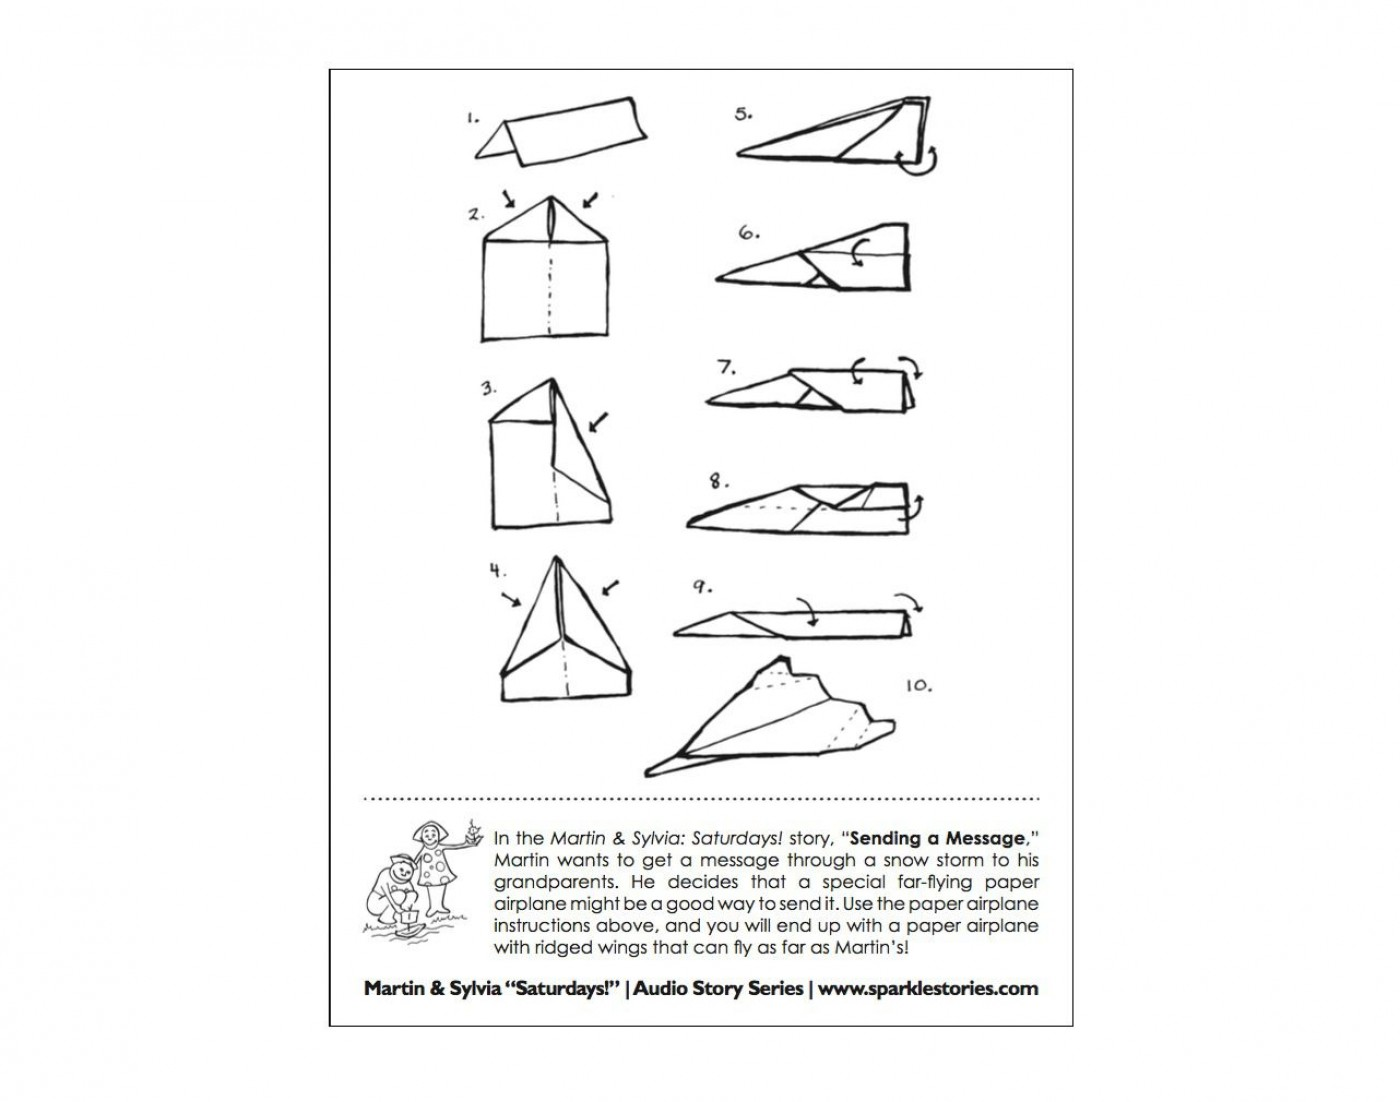 008 Fearsome Printable Paper Airplane Design High Definition  Free Instruction Pdf Simple A4 Plane1400